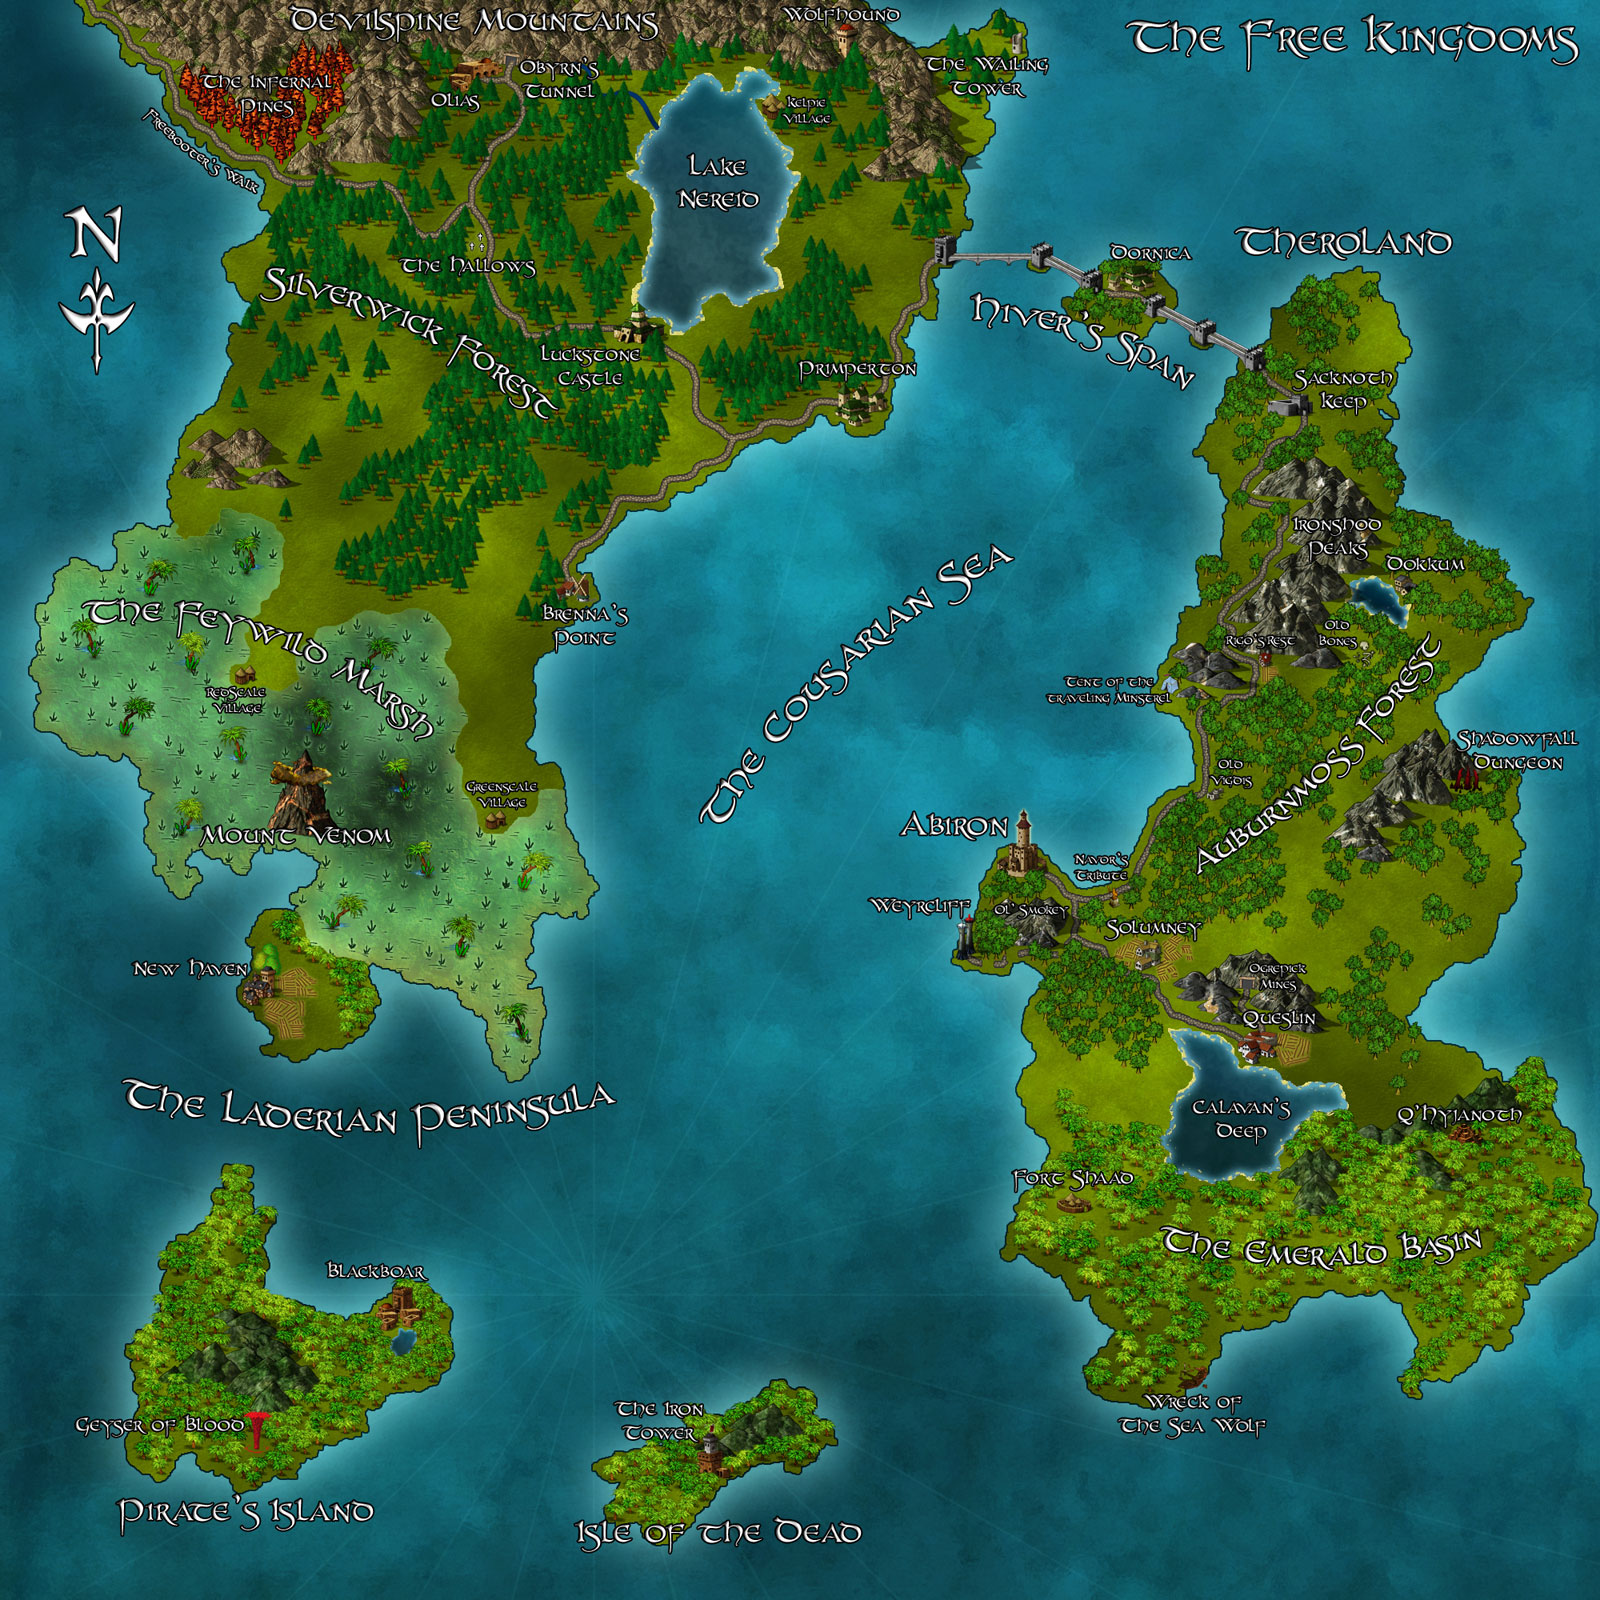 The Free Kingdoms By Sven Myrin Free Fantasy Maps